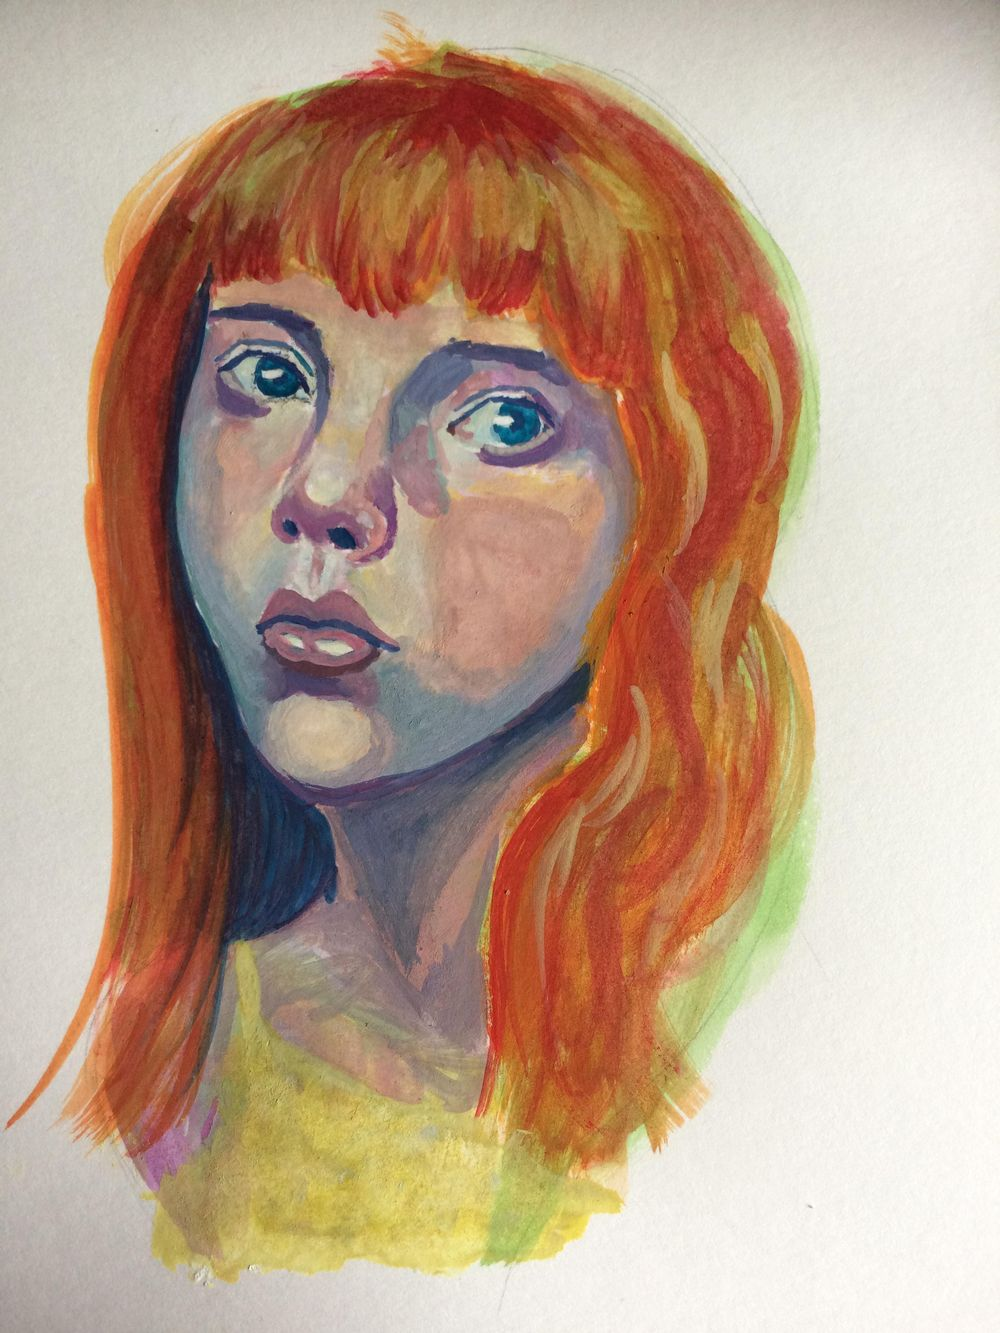 Ginger - image 2 - student project